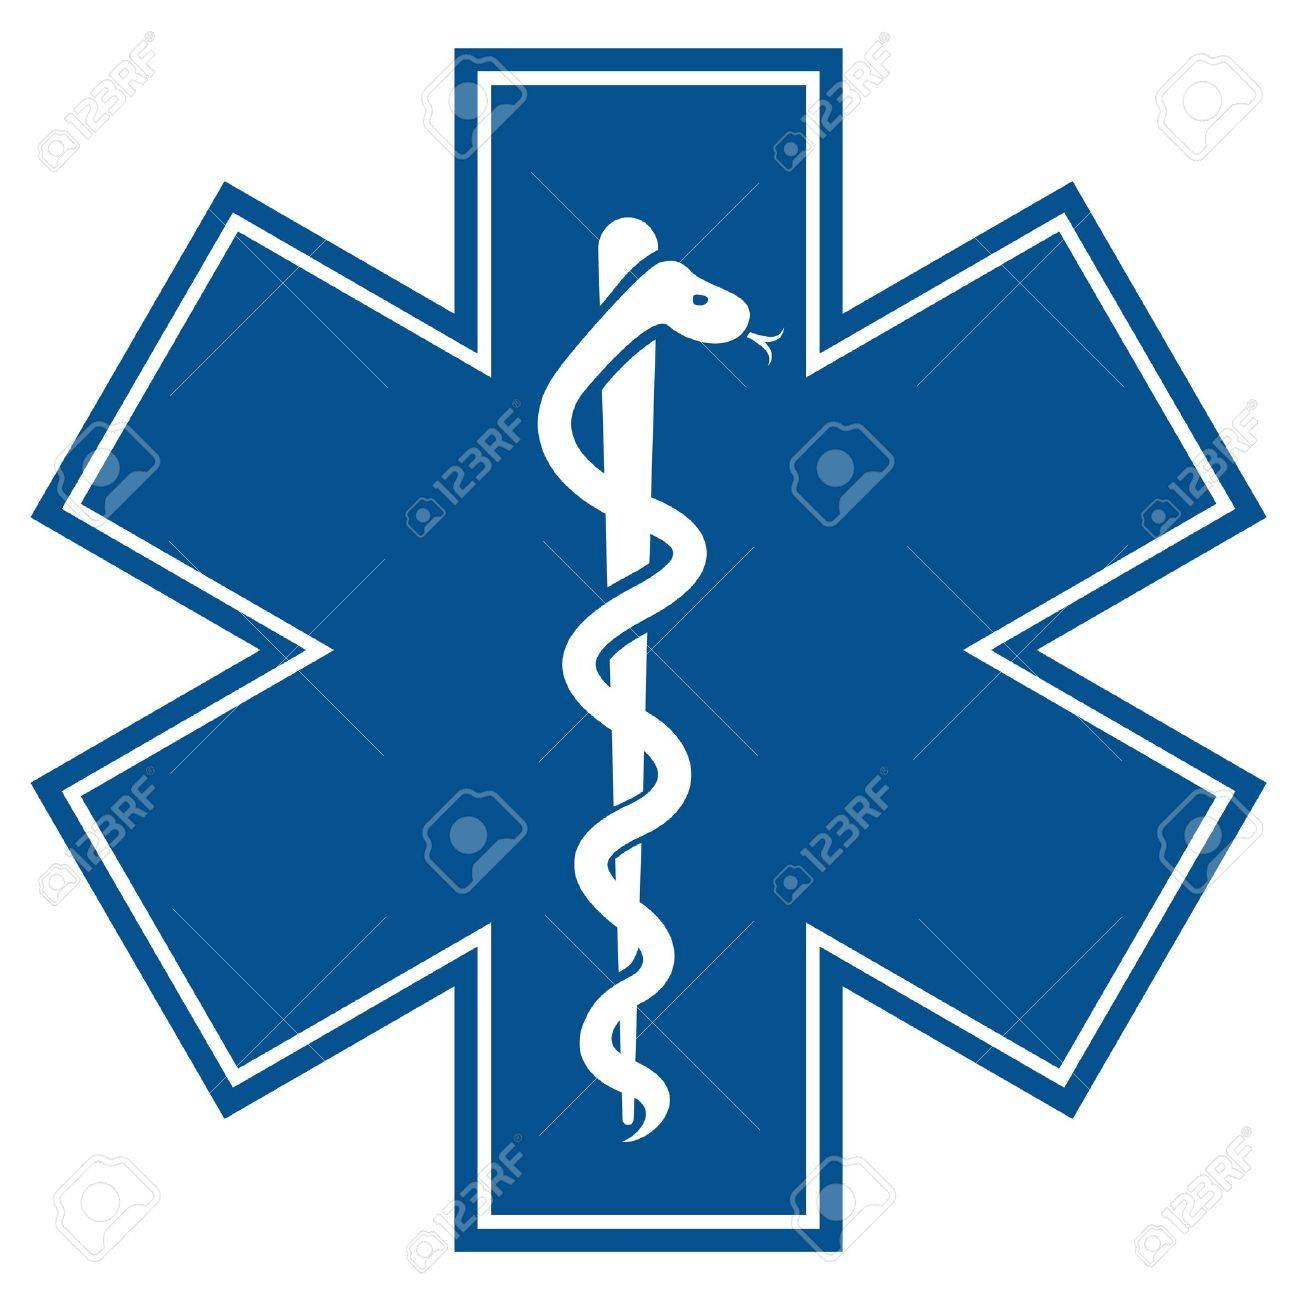 Emergency star medical symbol caduceus snake with stick royalty emergency star medical symbol caduceus snake with stick stock vector 20504126 buycottarizona Image collections